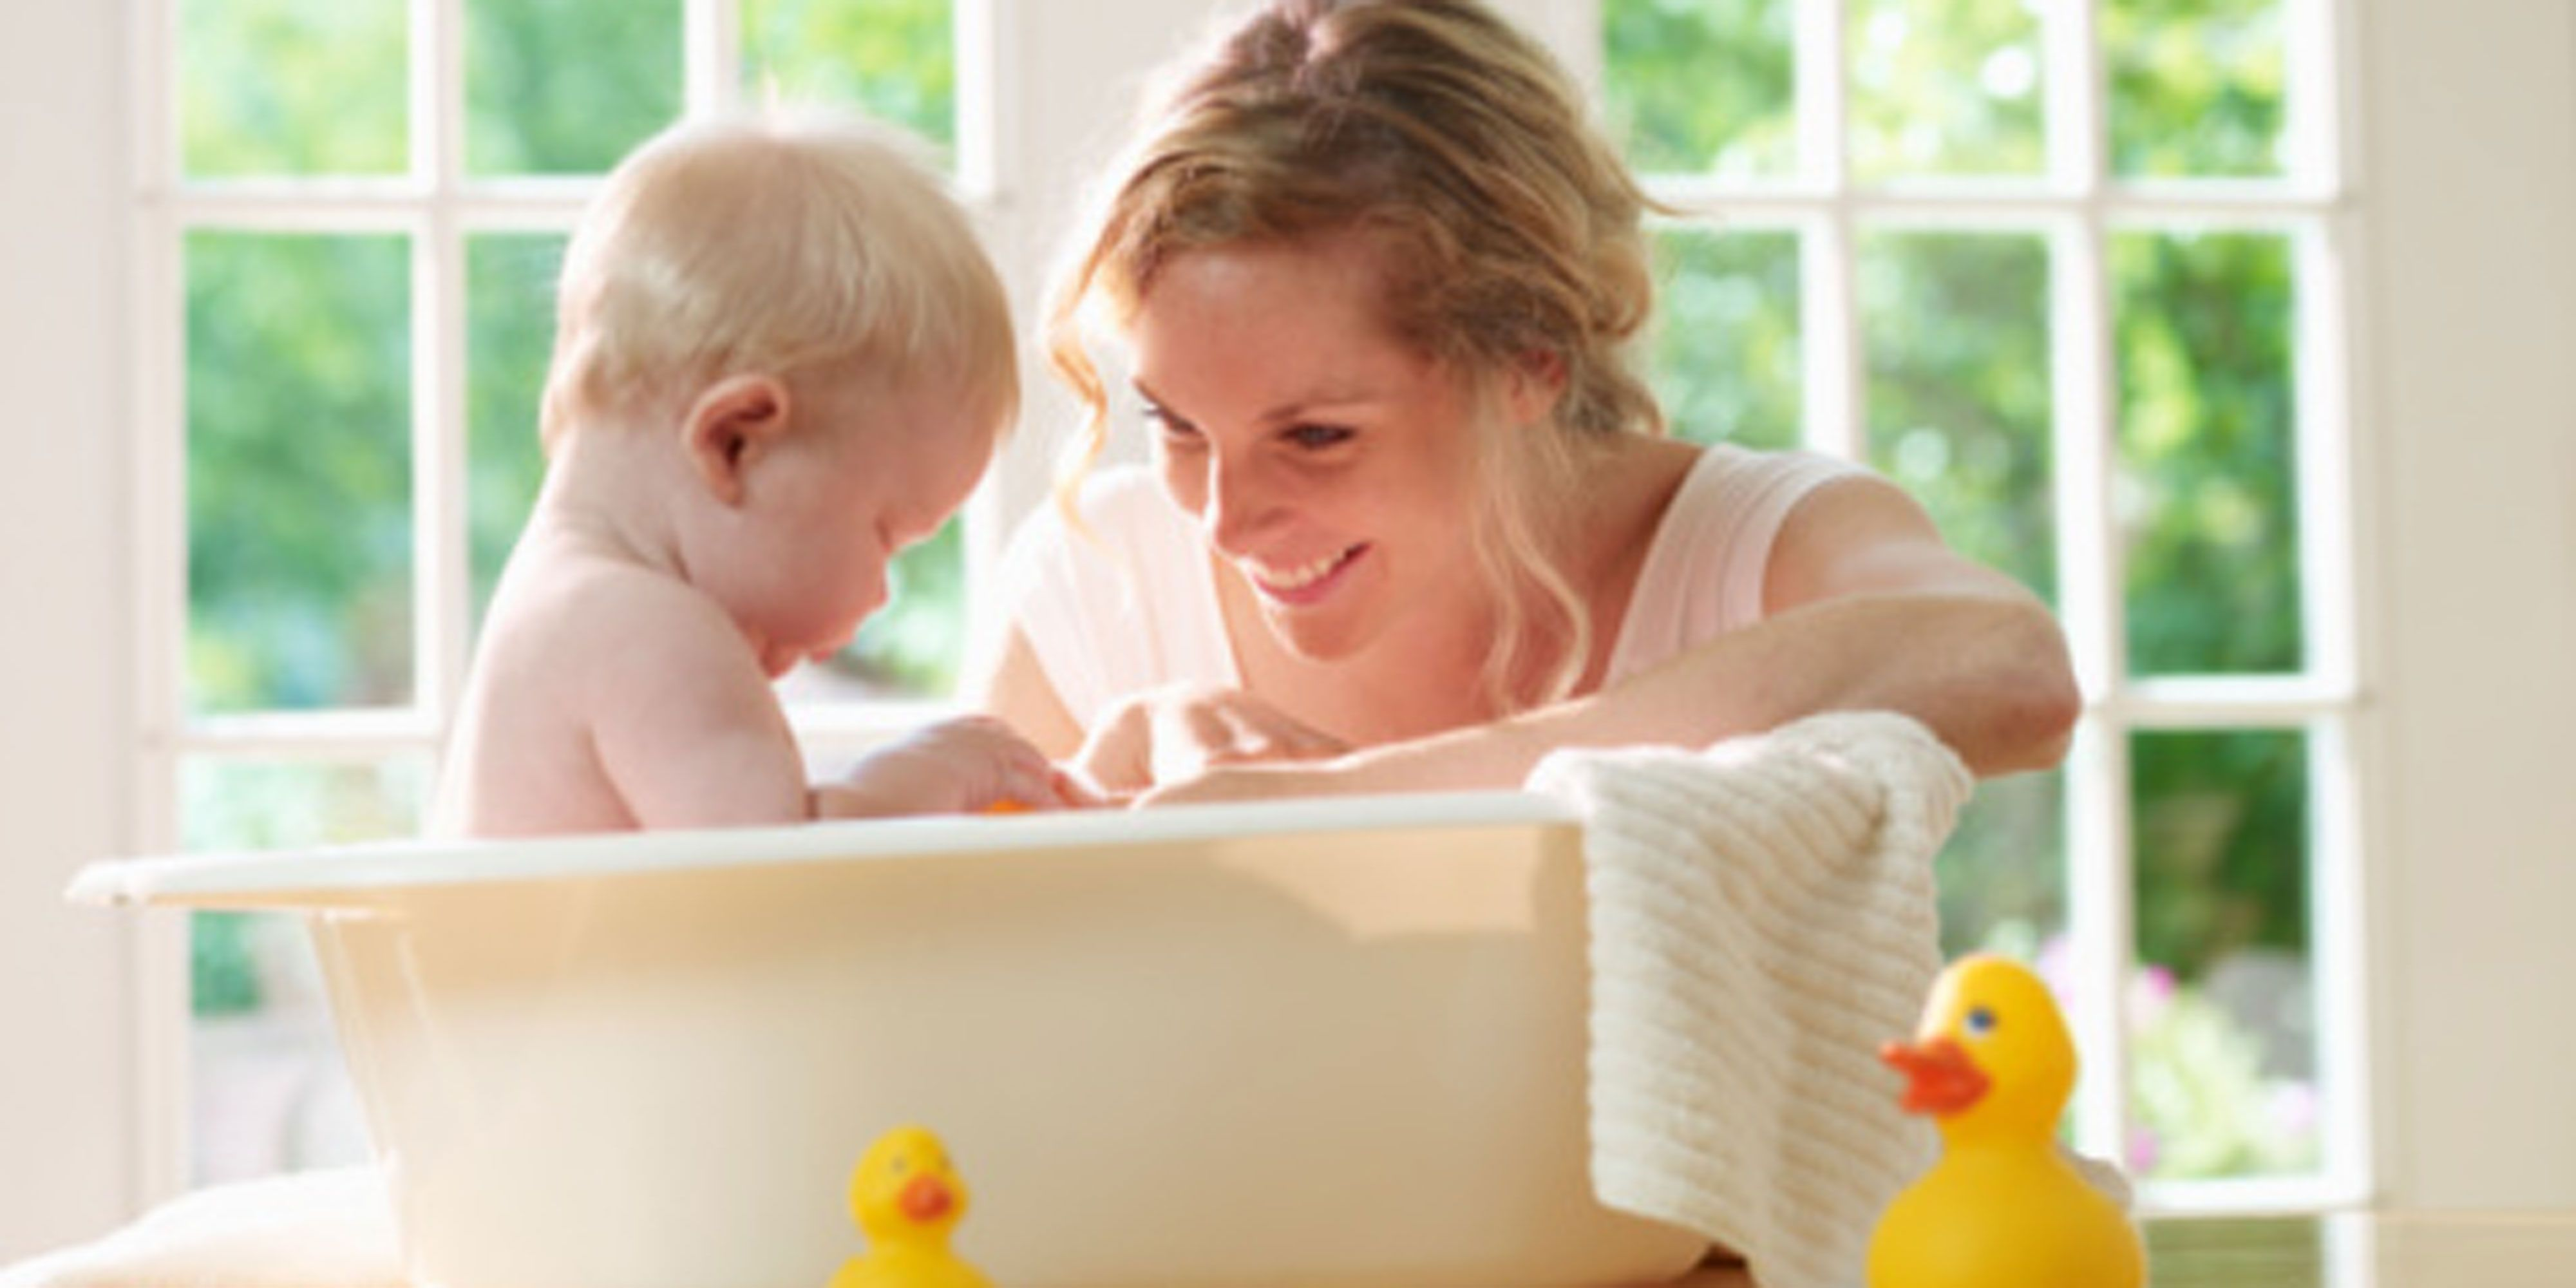 How to bathe your baby